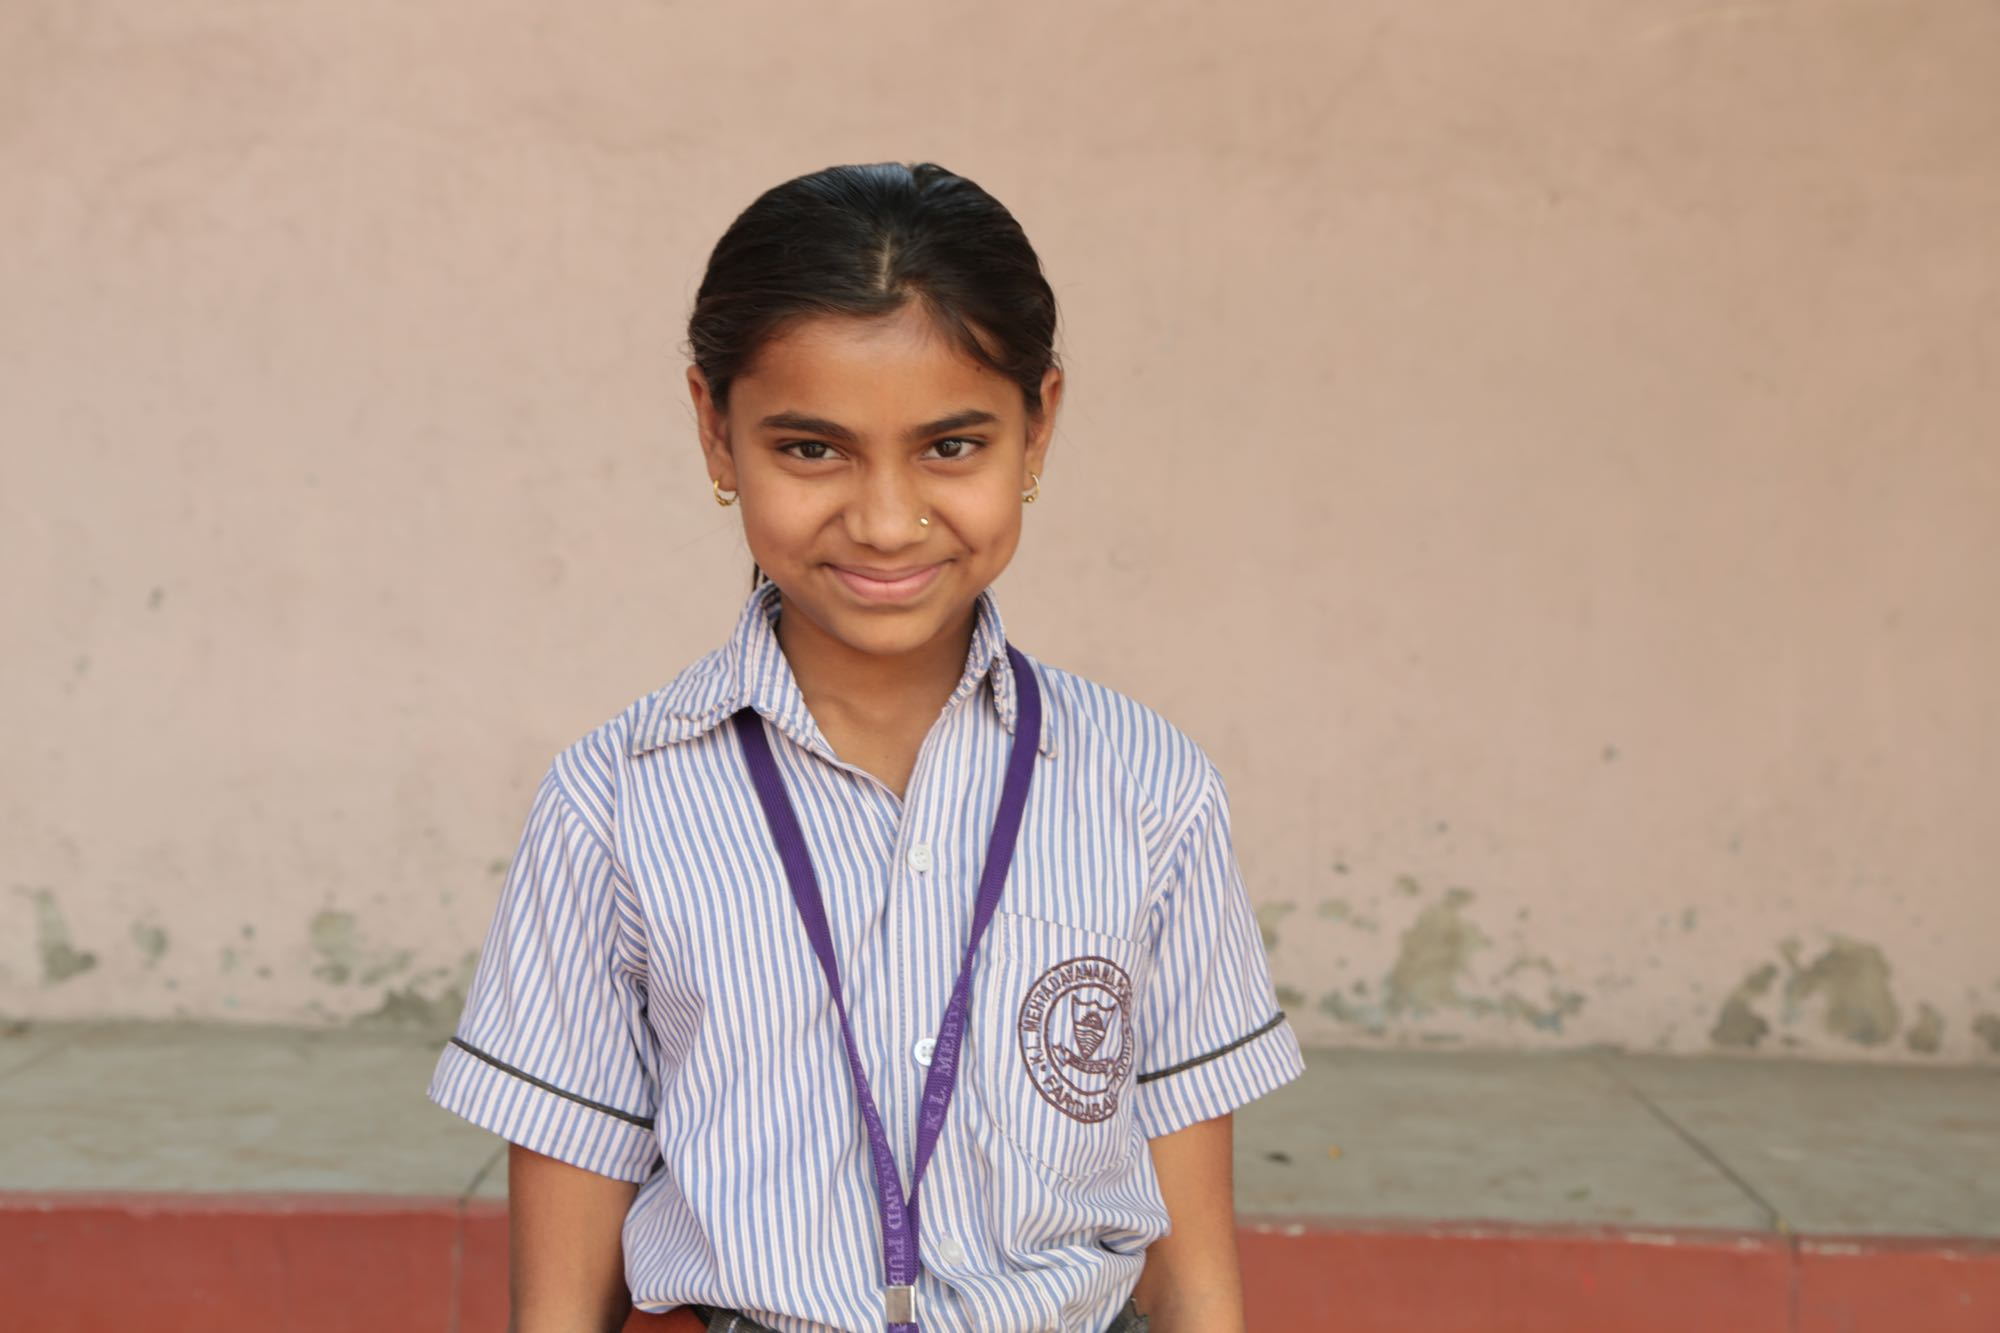 Kiran - (S2S-135)Currently in need of sponsorship. Click here to sponsor Kiran or another scholar for just $30/month!Sponsored previously by the Tesregounes family